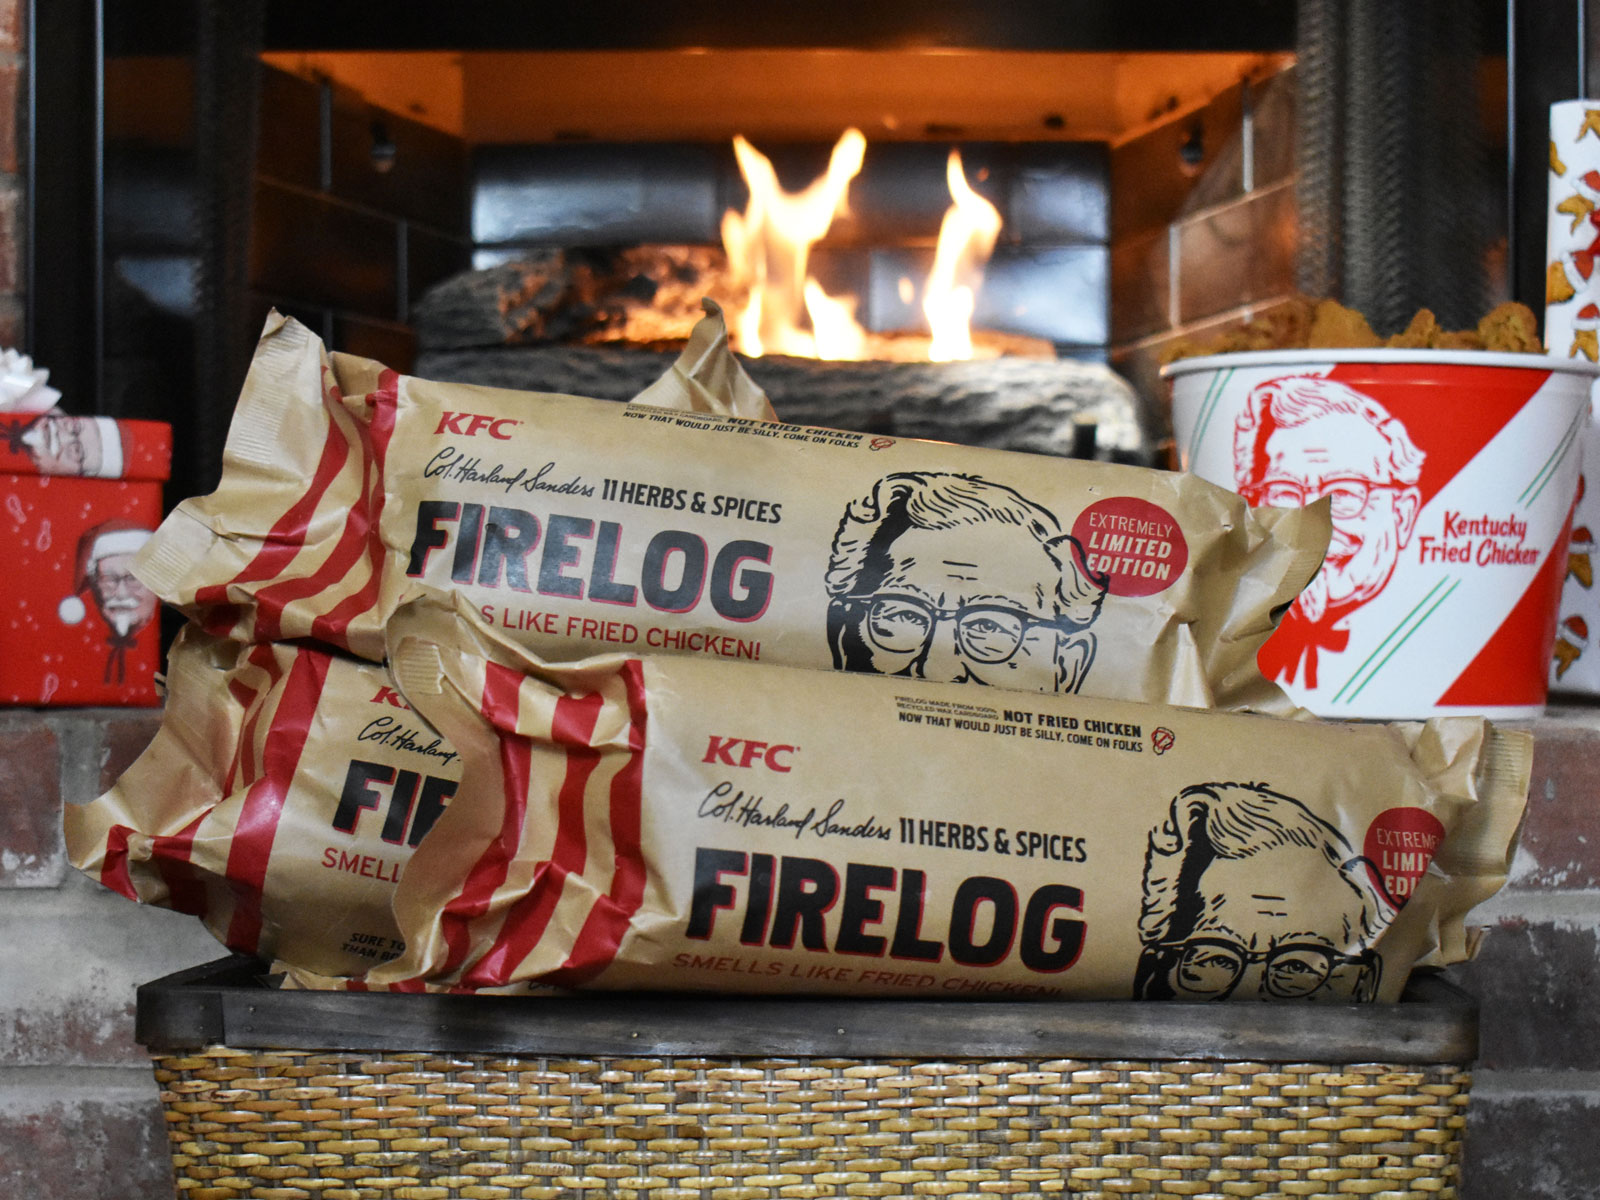 KFC Put Its 11 Herbs & Spices into a Firelog for Christmas | Food & Wine